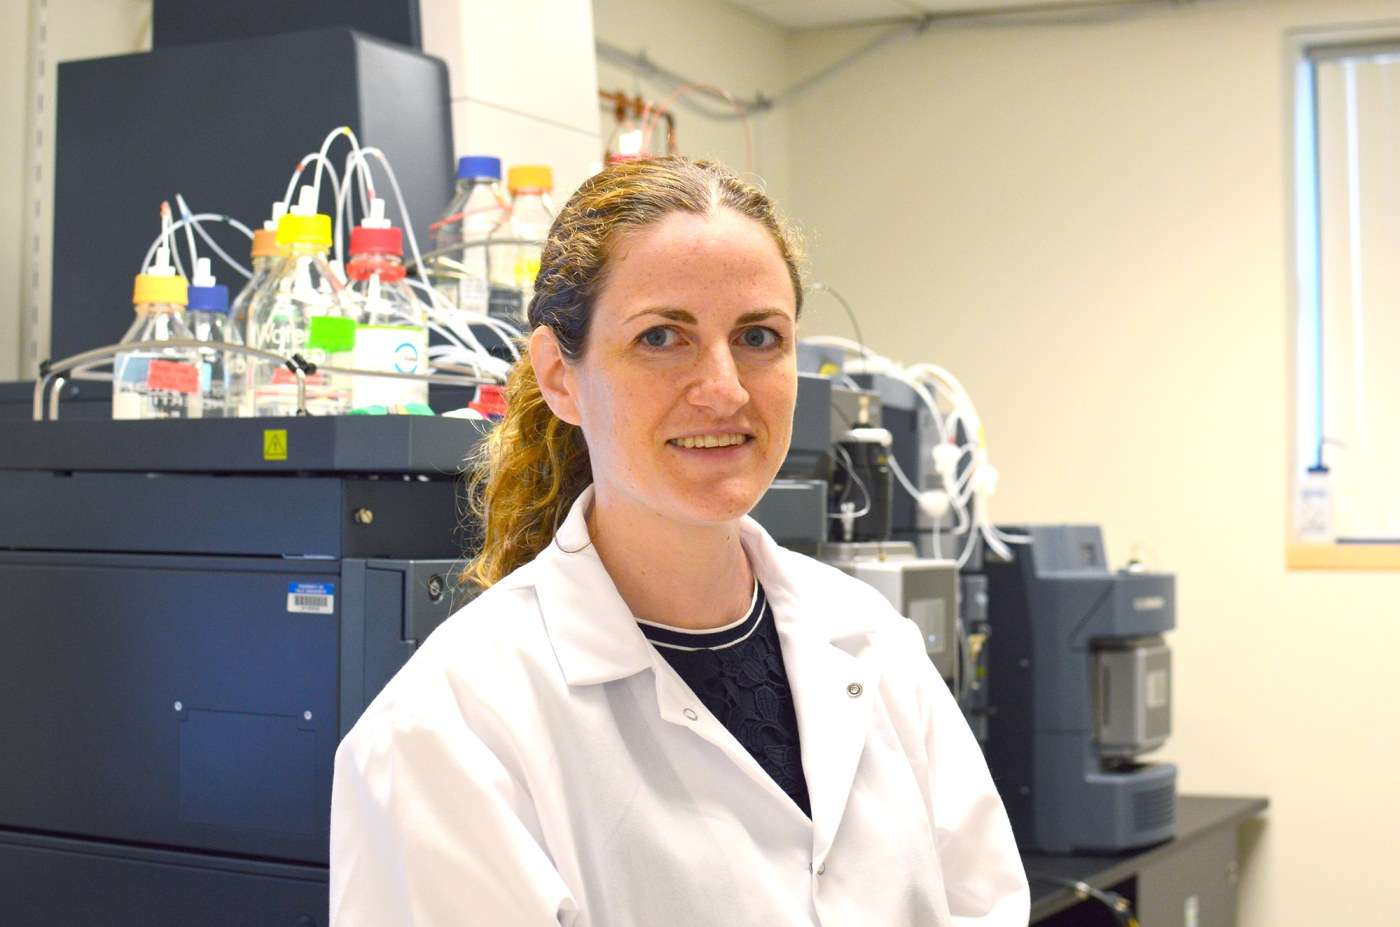 Dr. Caroline Johnson is seeking answers to why women have higher rates of a more deadly right-sided colon cancer than men.